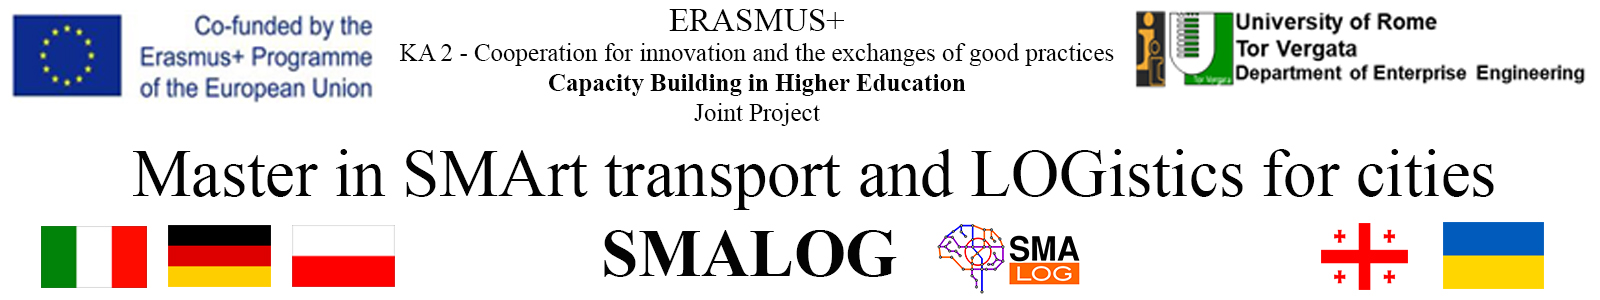 SmaLog - Master in SMArt transport and LOGistics for cities